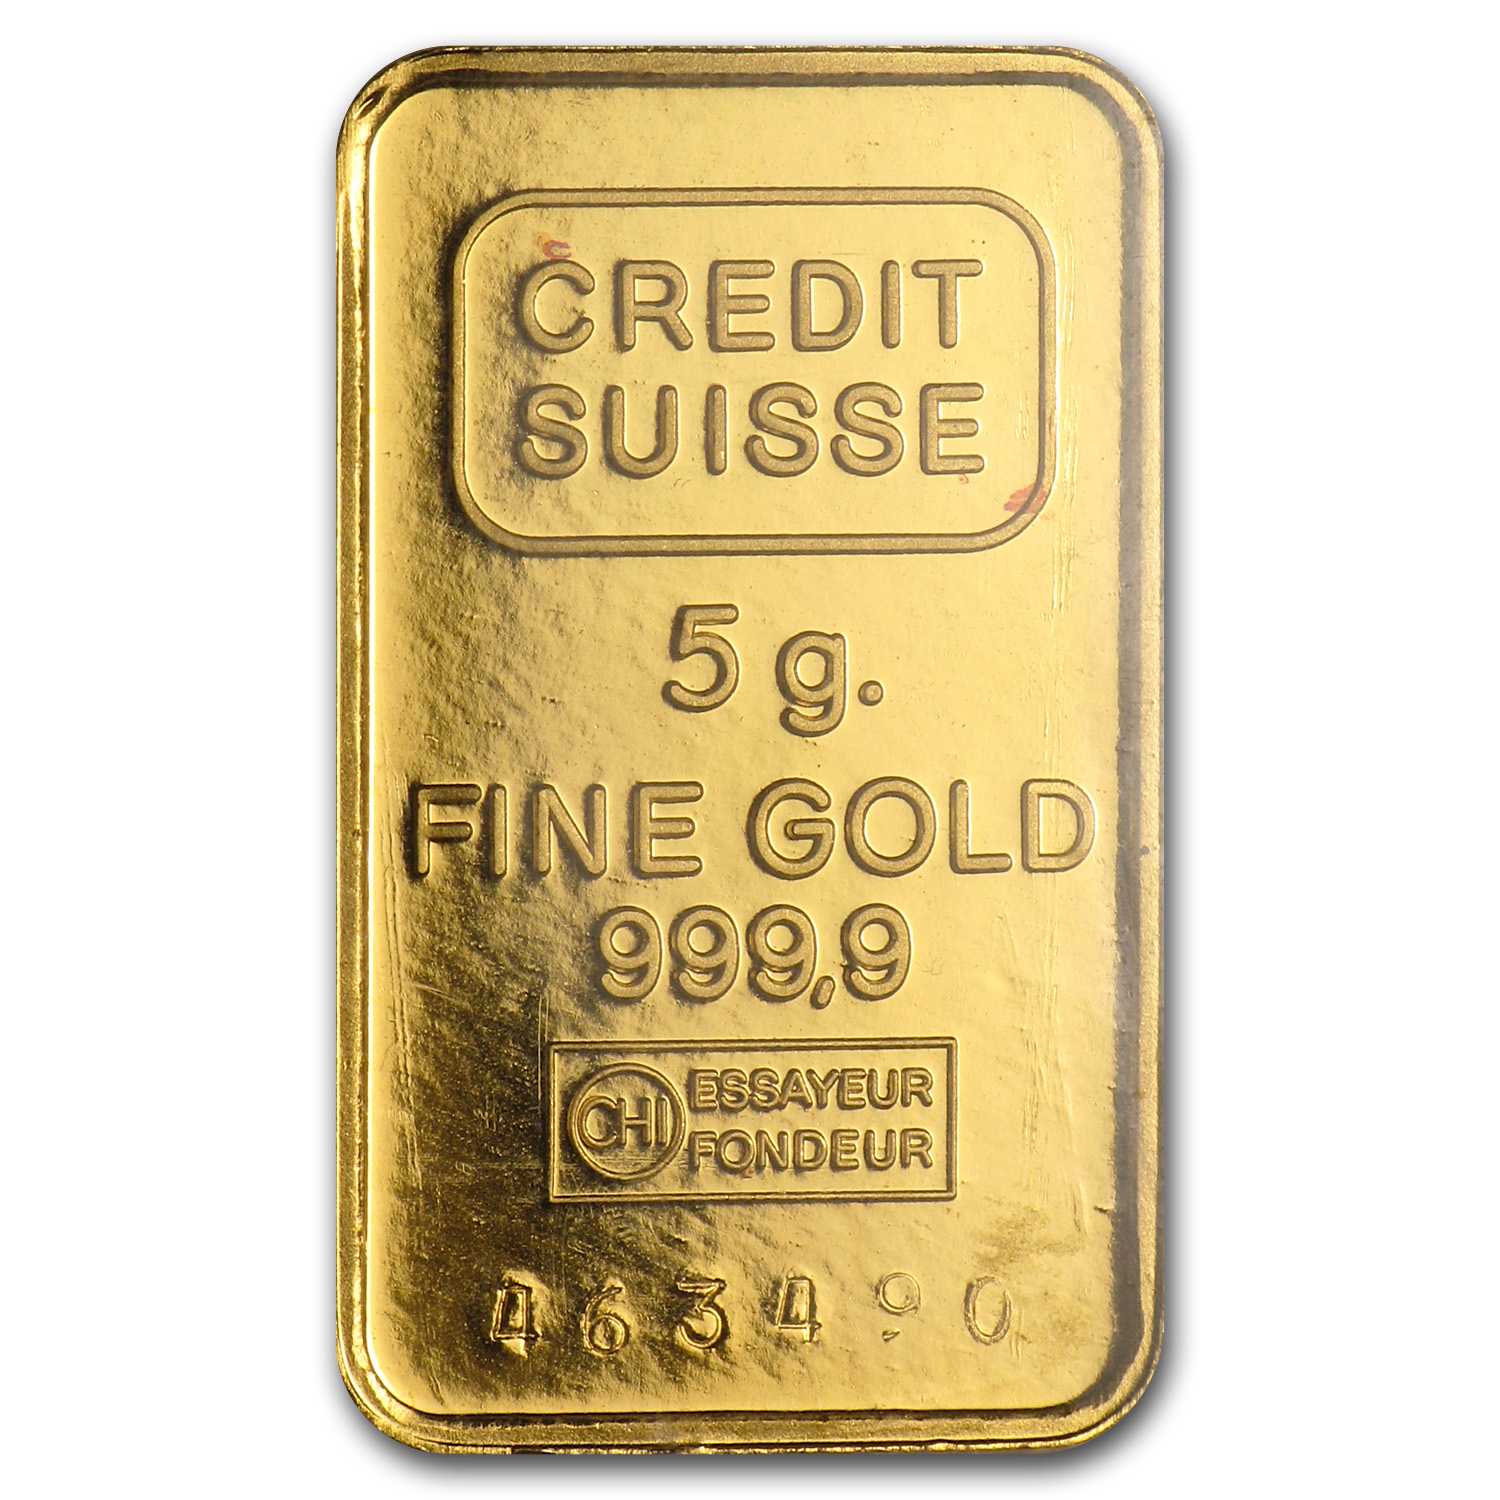 5 gram Gold Bars - Credit Suisse (Vintage Design)